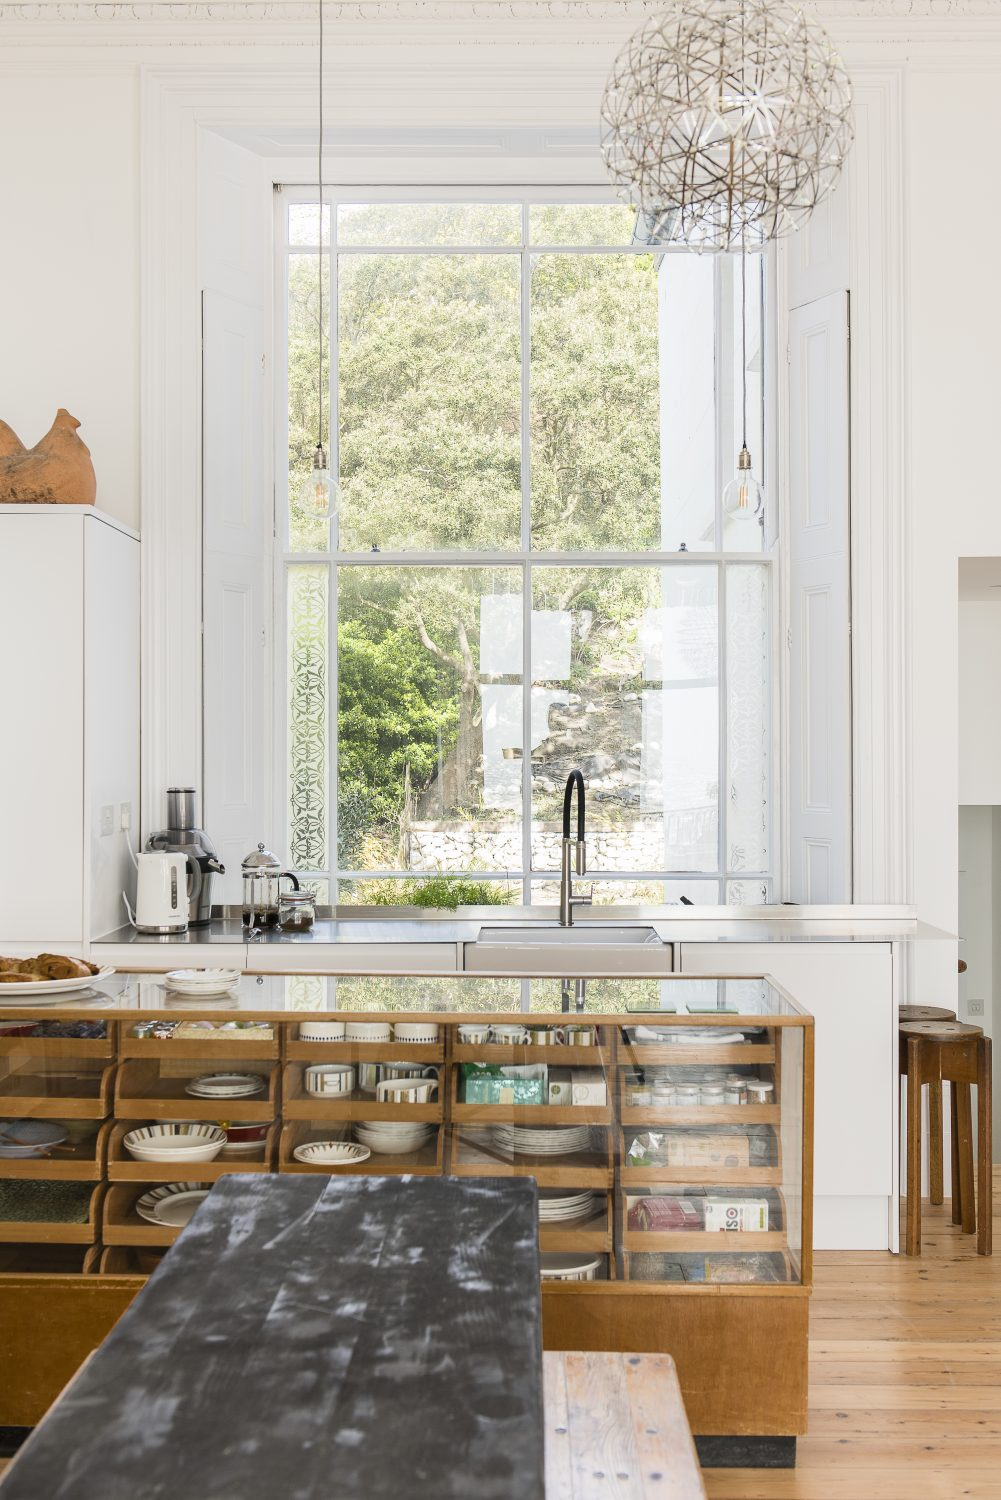 Looking the other way, towards the sea. The refectory table is from London Rd. and the stools are from Object